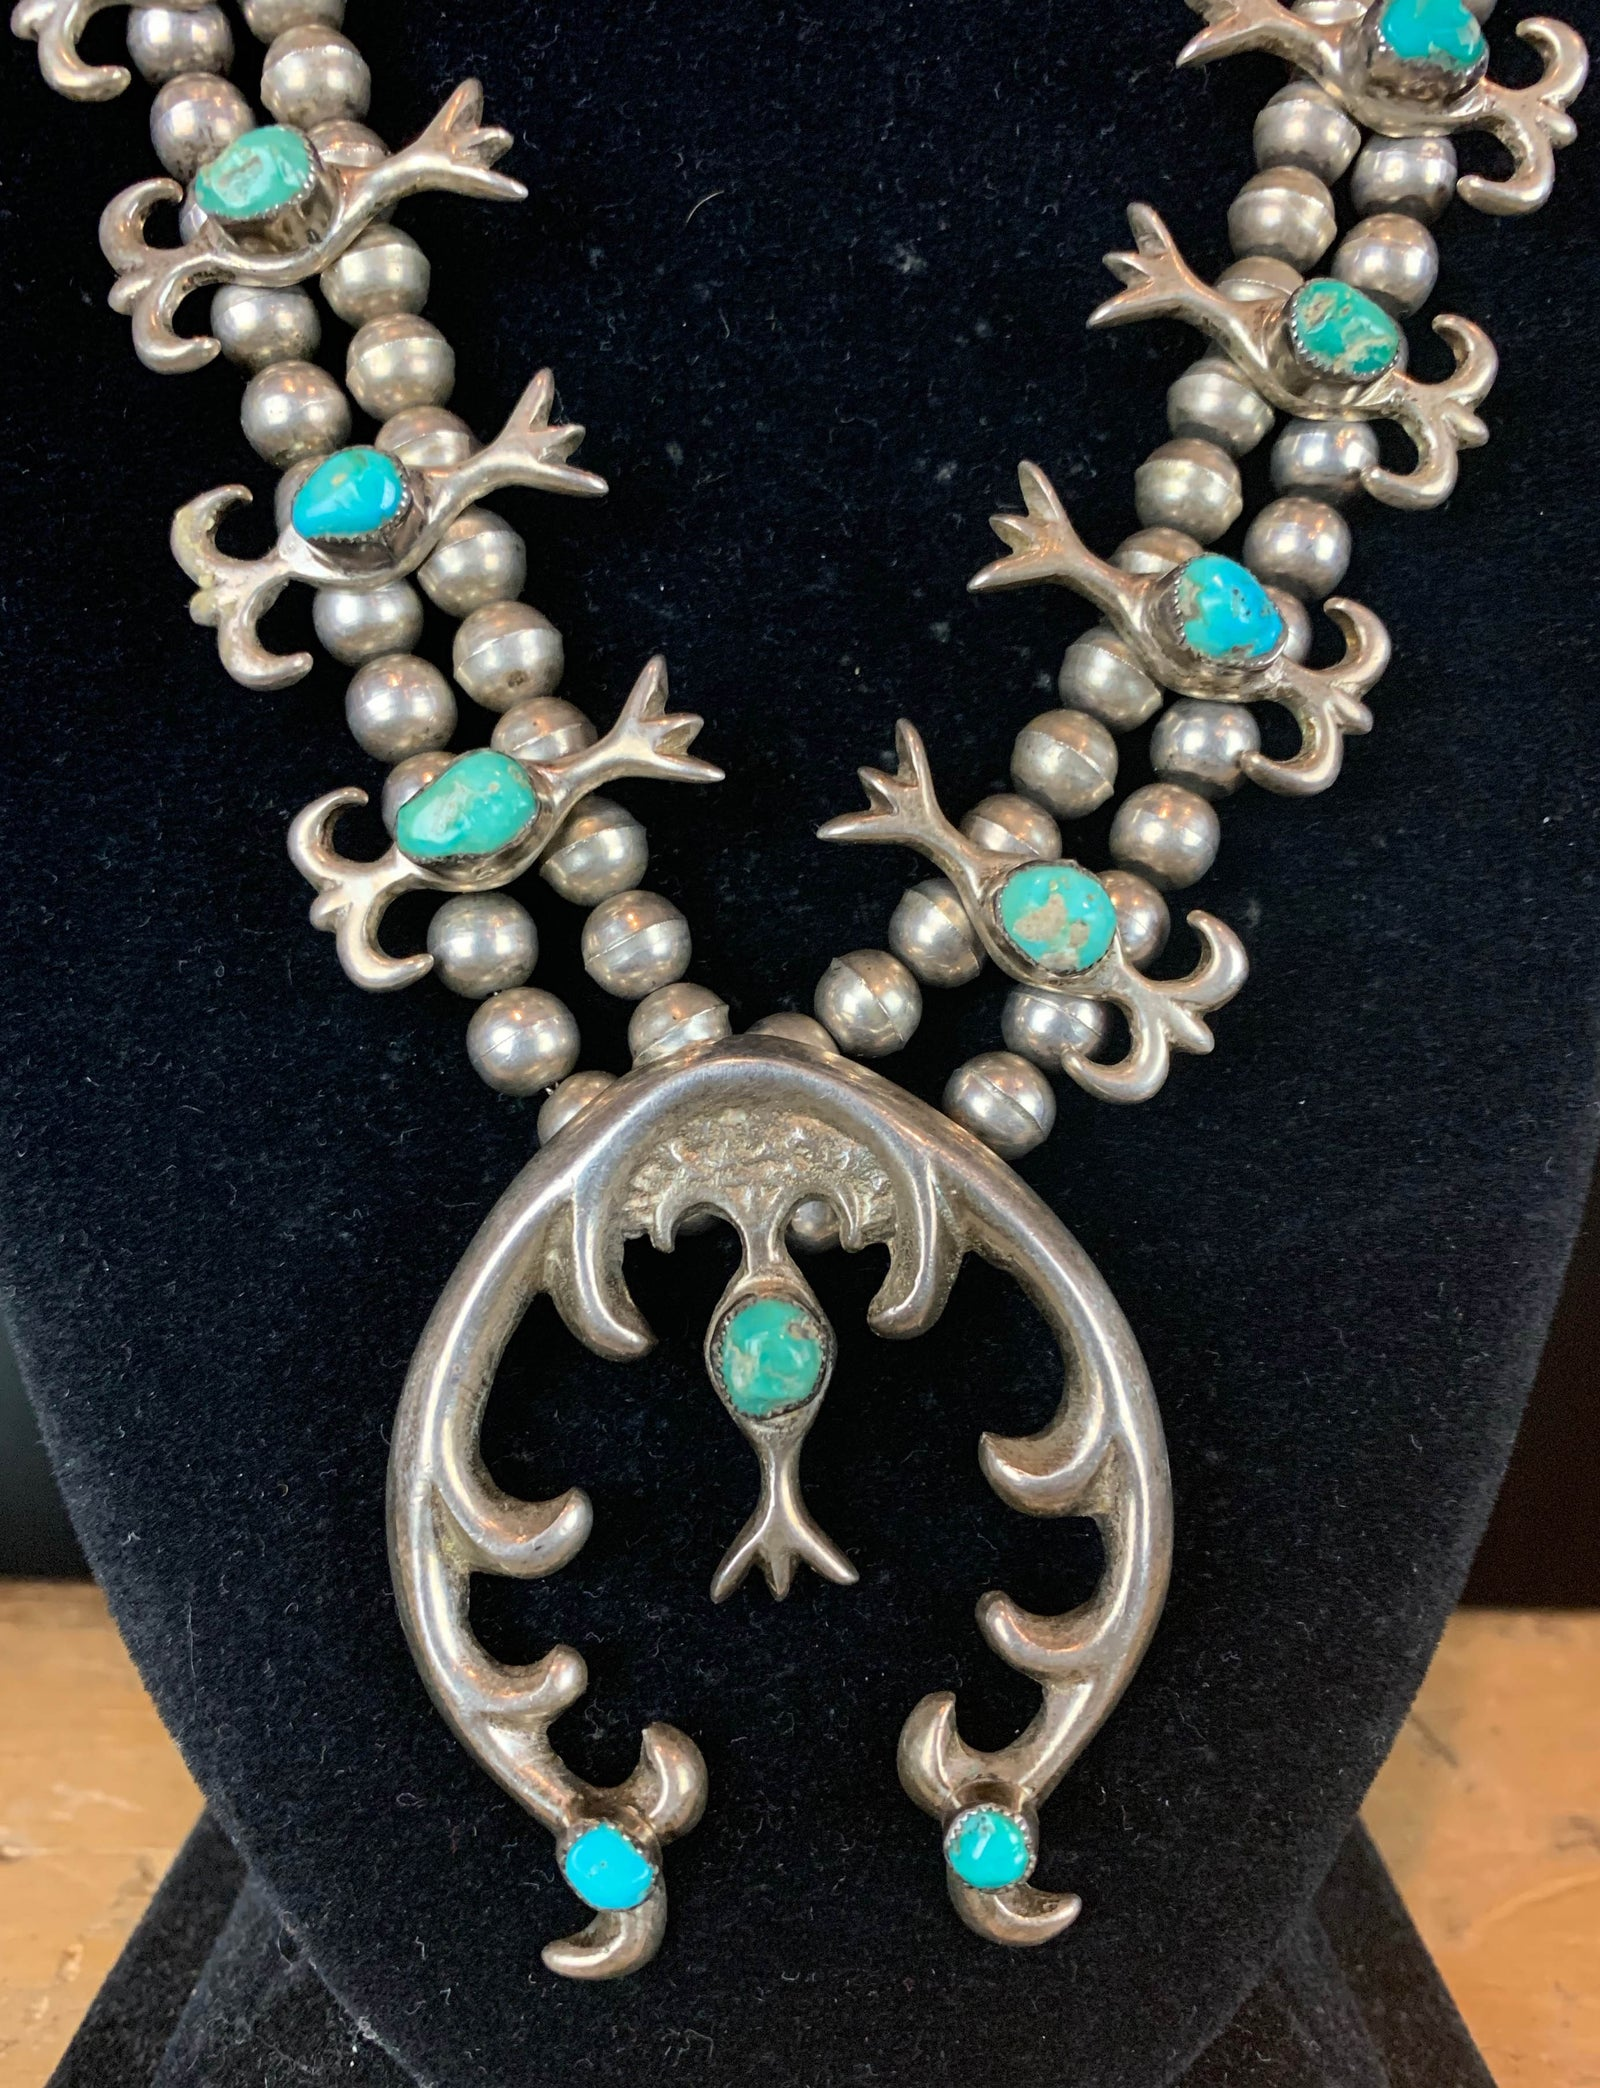 Vintage Navajo Sterling Silver Turquoise Squash Blossom Necklace